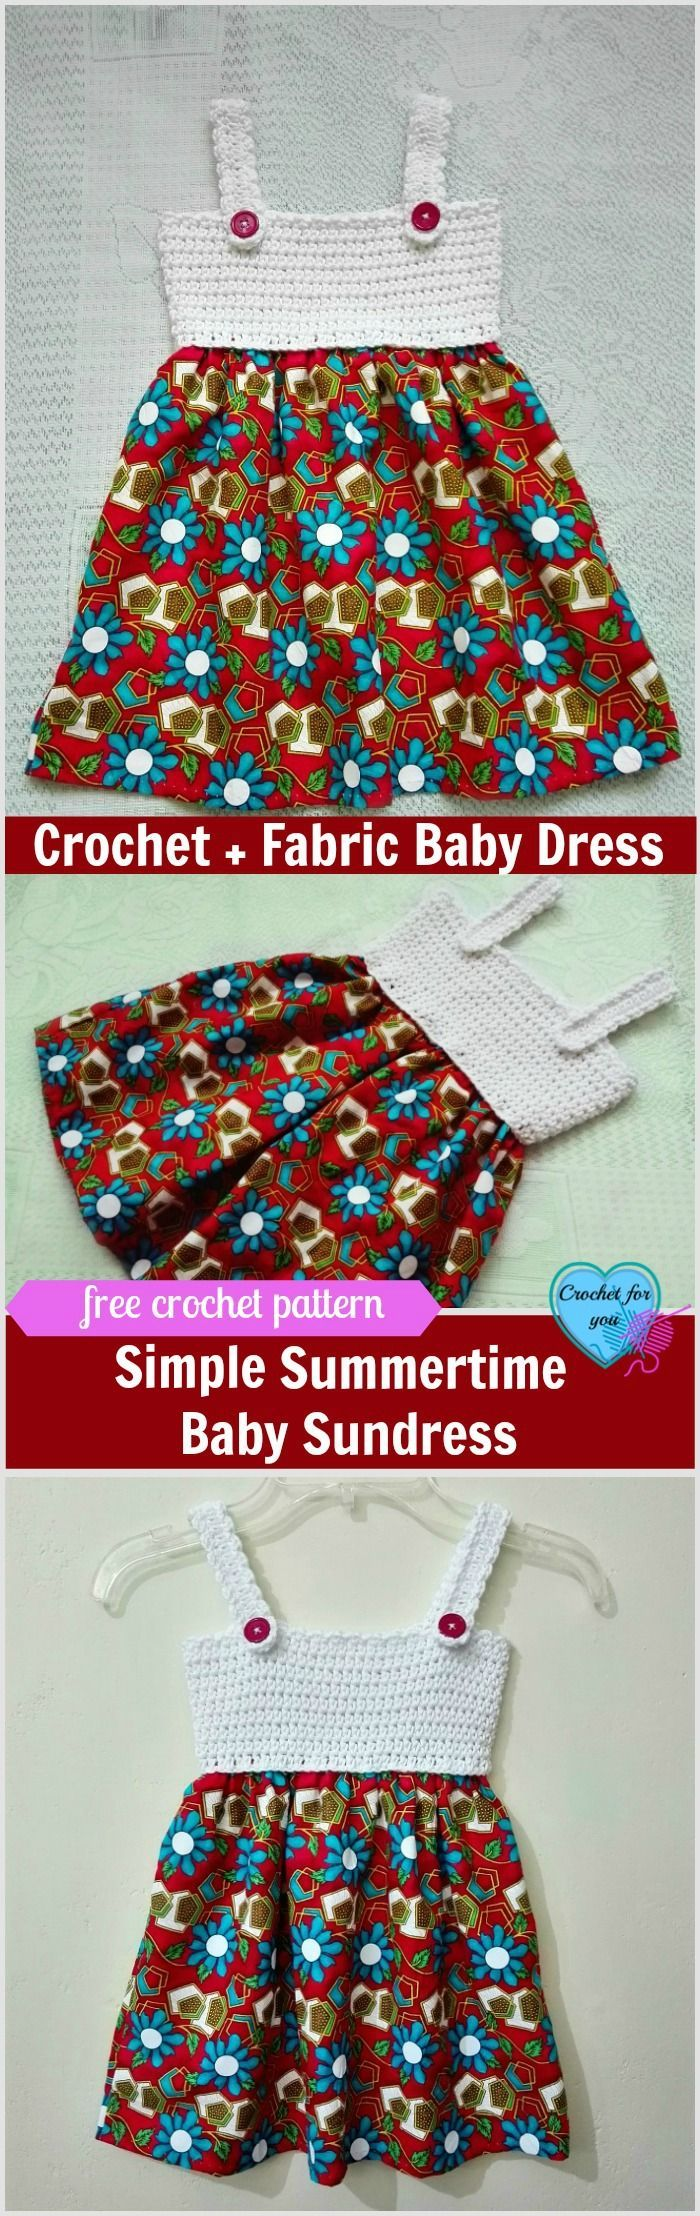 Simple Summertime Baby Sundress Free Crochet + Fabric Pattern